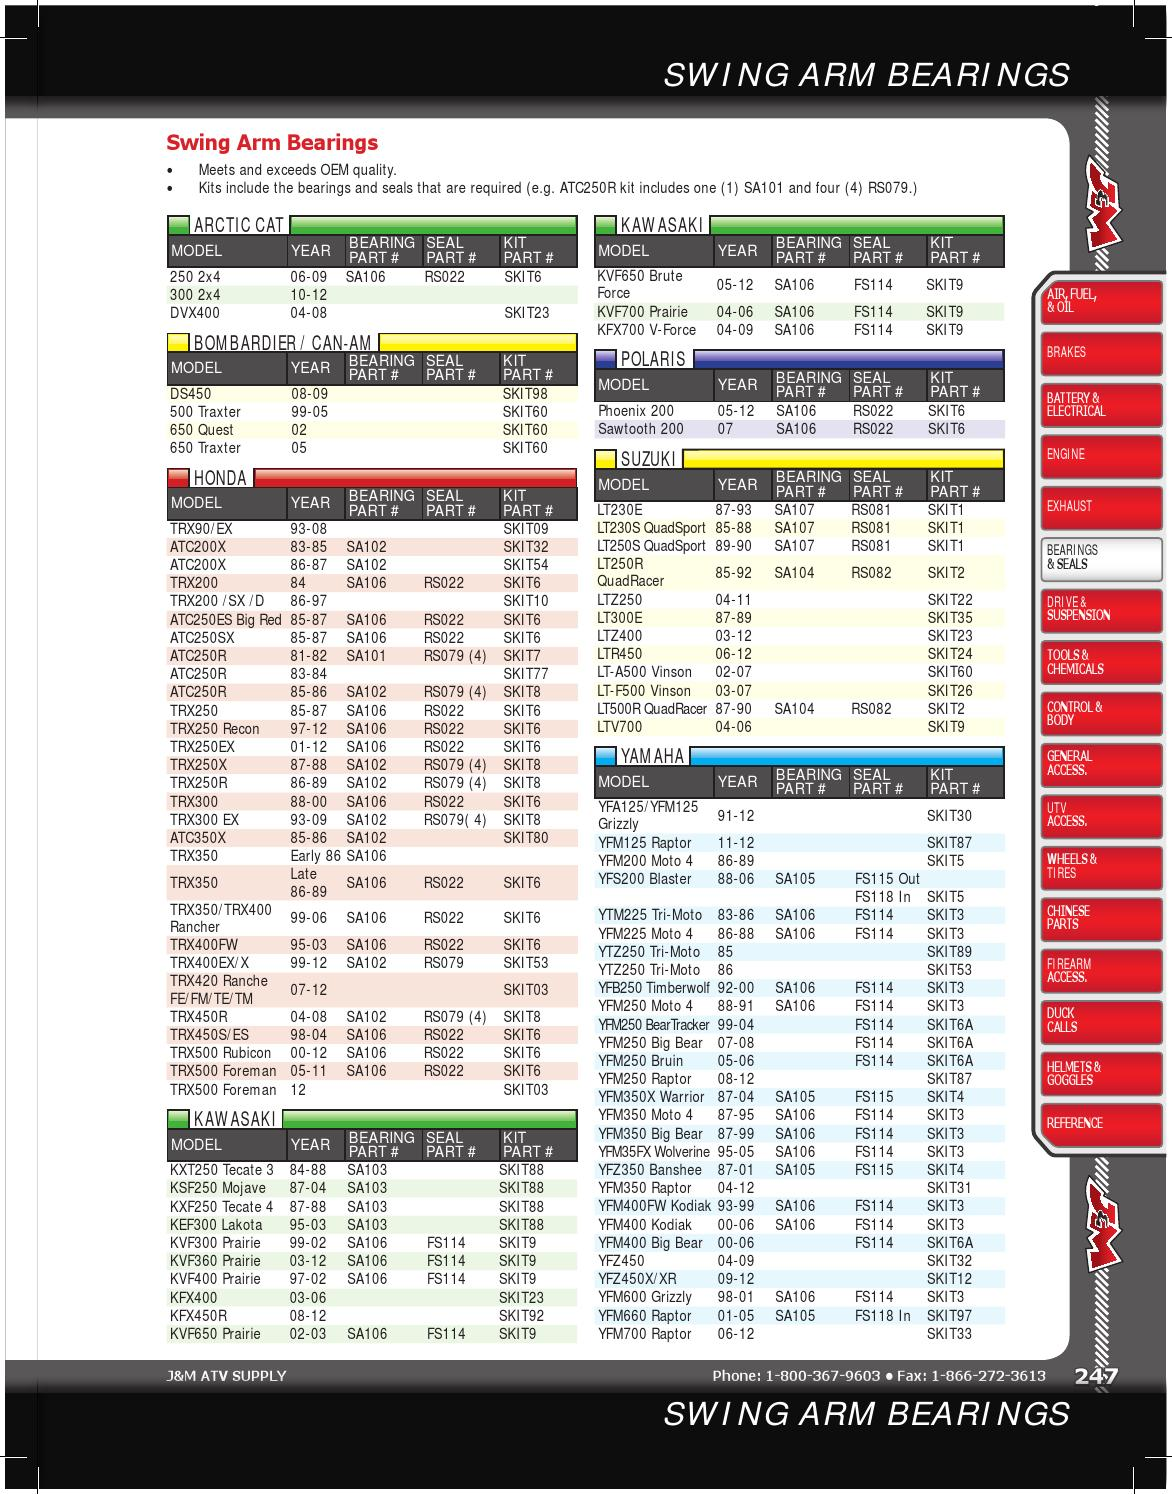 2010 Kx250f Engine Diagram Smart Wiring Diagrams 2009 Kawasaki Service Manual Basic Instruction J M Catalog 2014 Part 2 By Elliot Buring Issuu 2011 2013